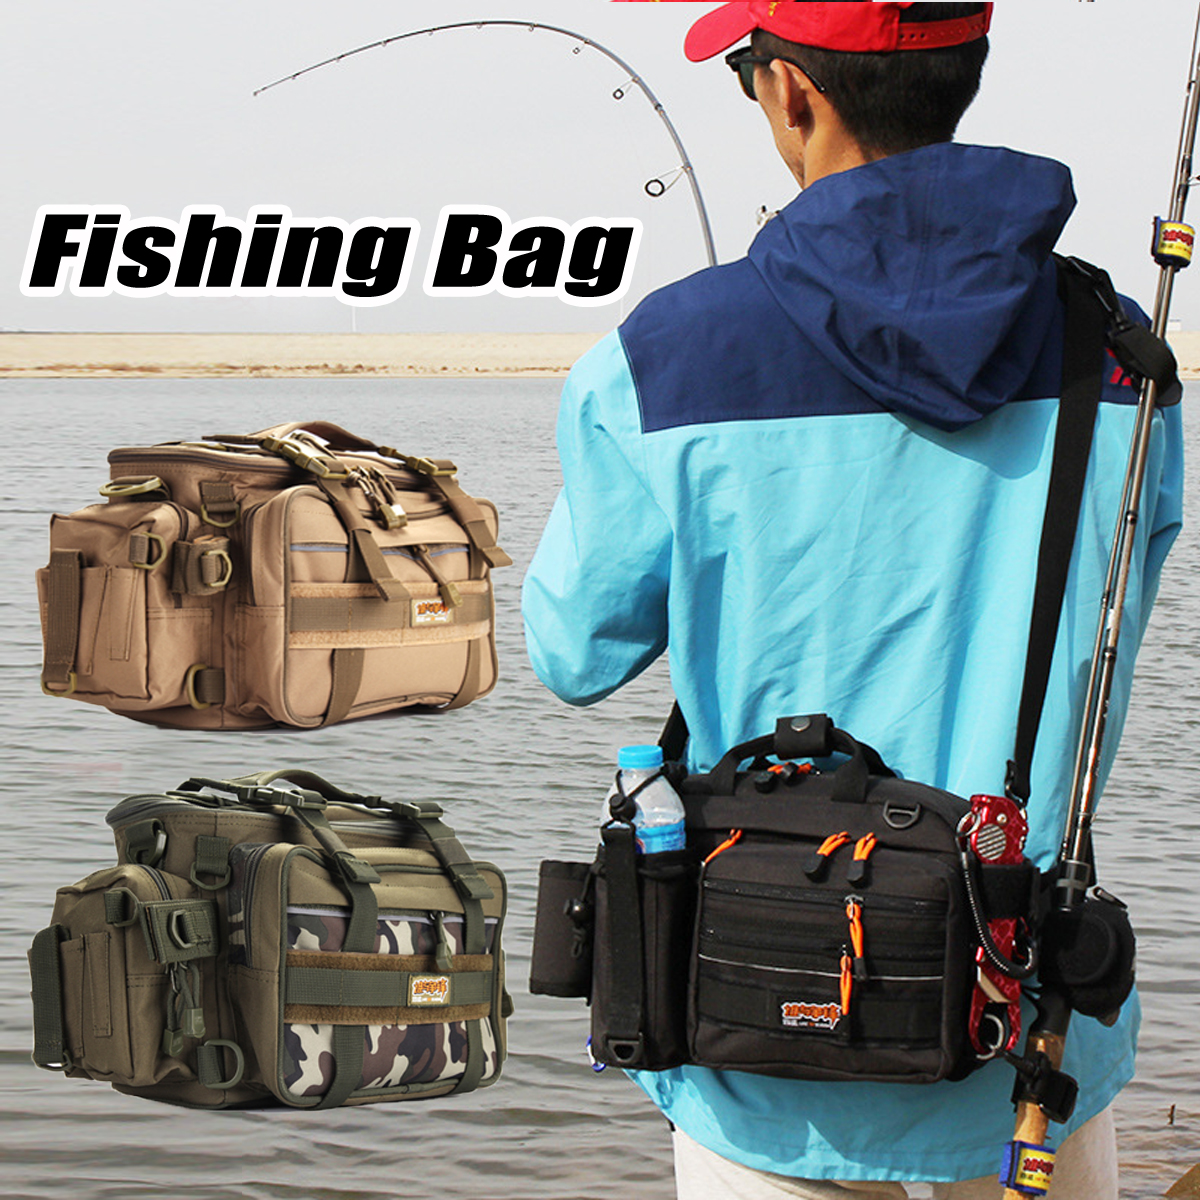 все цены на Large Fishing Bag Water Resistant Backpack Box Waist Shoulder Strap Gear Storage